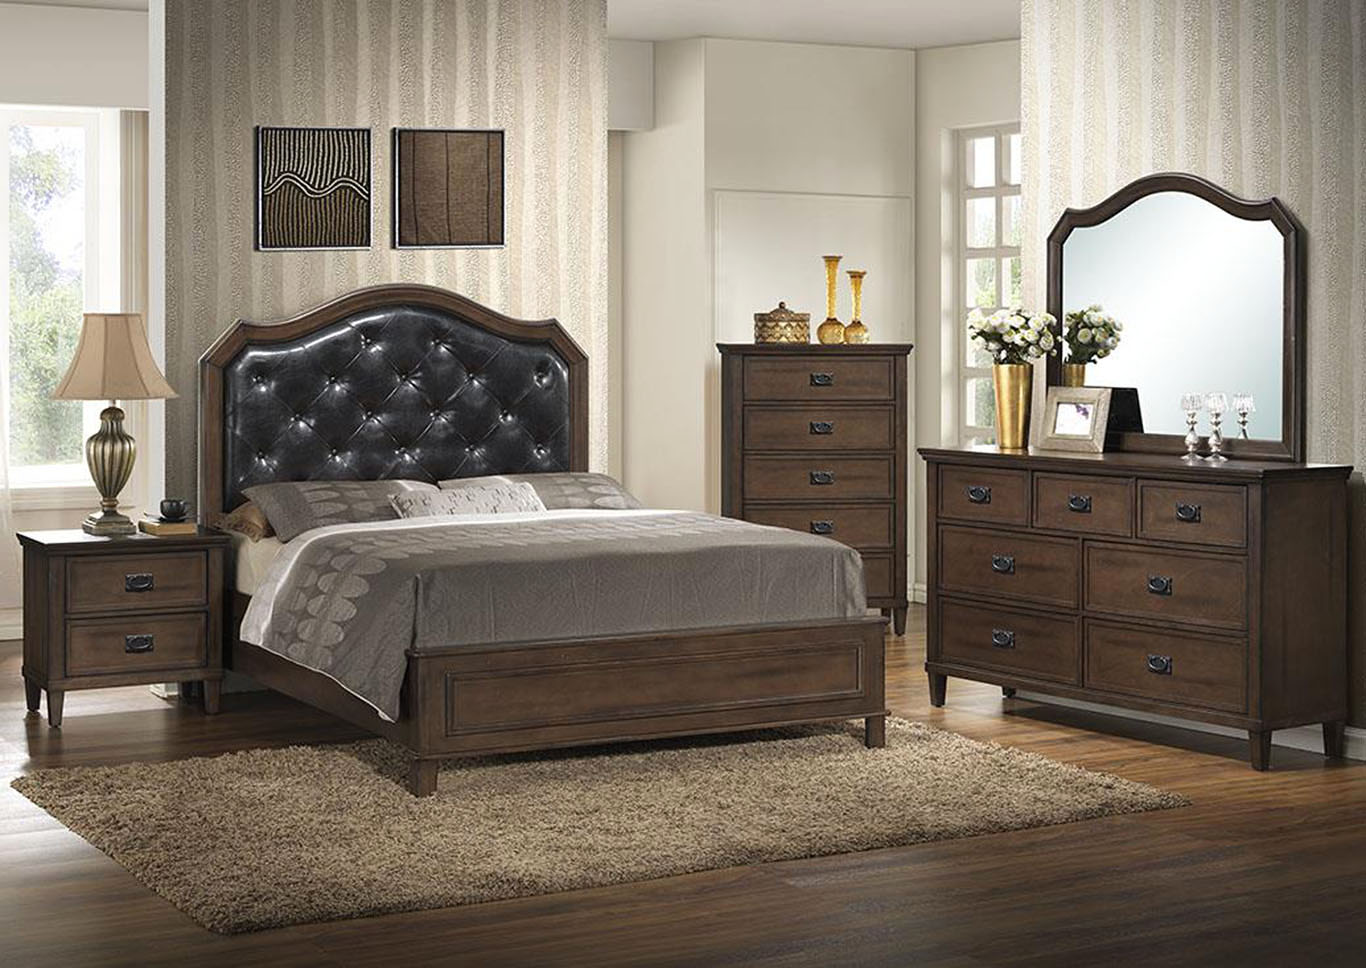 Brown Panel Queen 4 Piece Bedroom Set W/ Chest, Dresser & Mirror,Global Trading